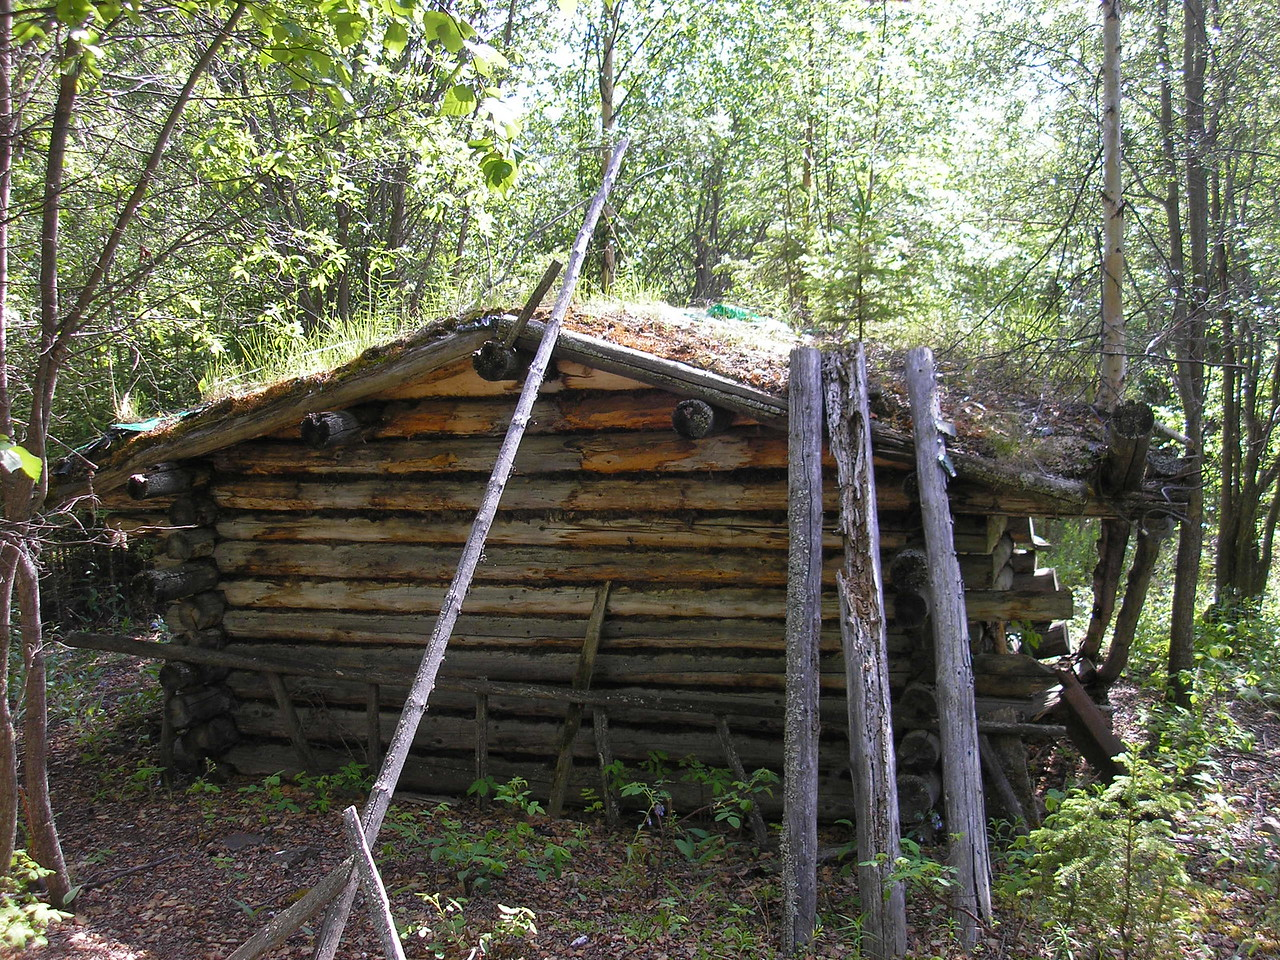 Thia is n okd trappers' cabin in the woods behind the Tetlin Visitor Center.  There were Americorps volunteers there building a trail to the cabin.